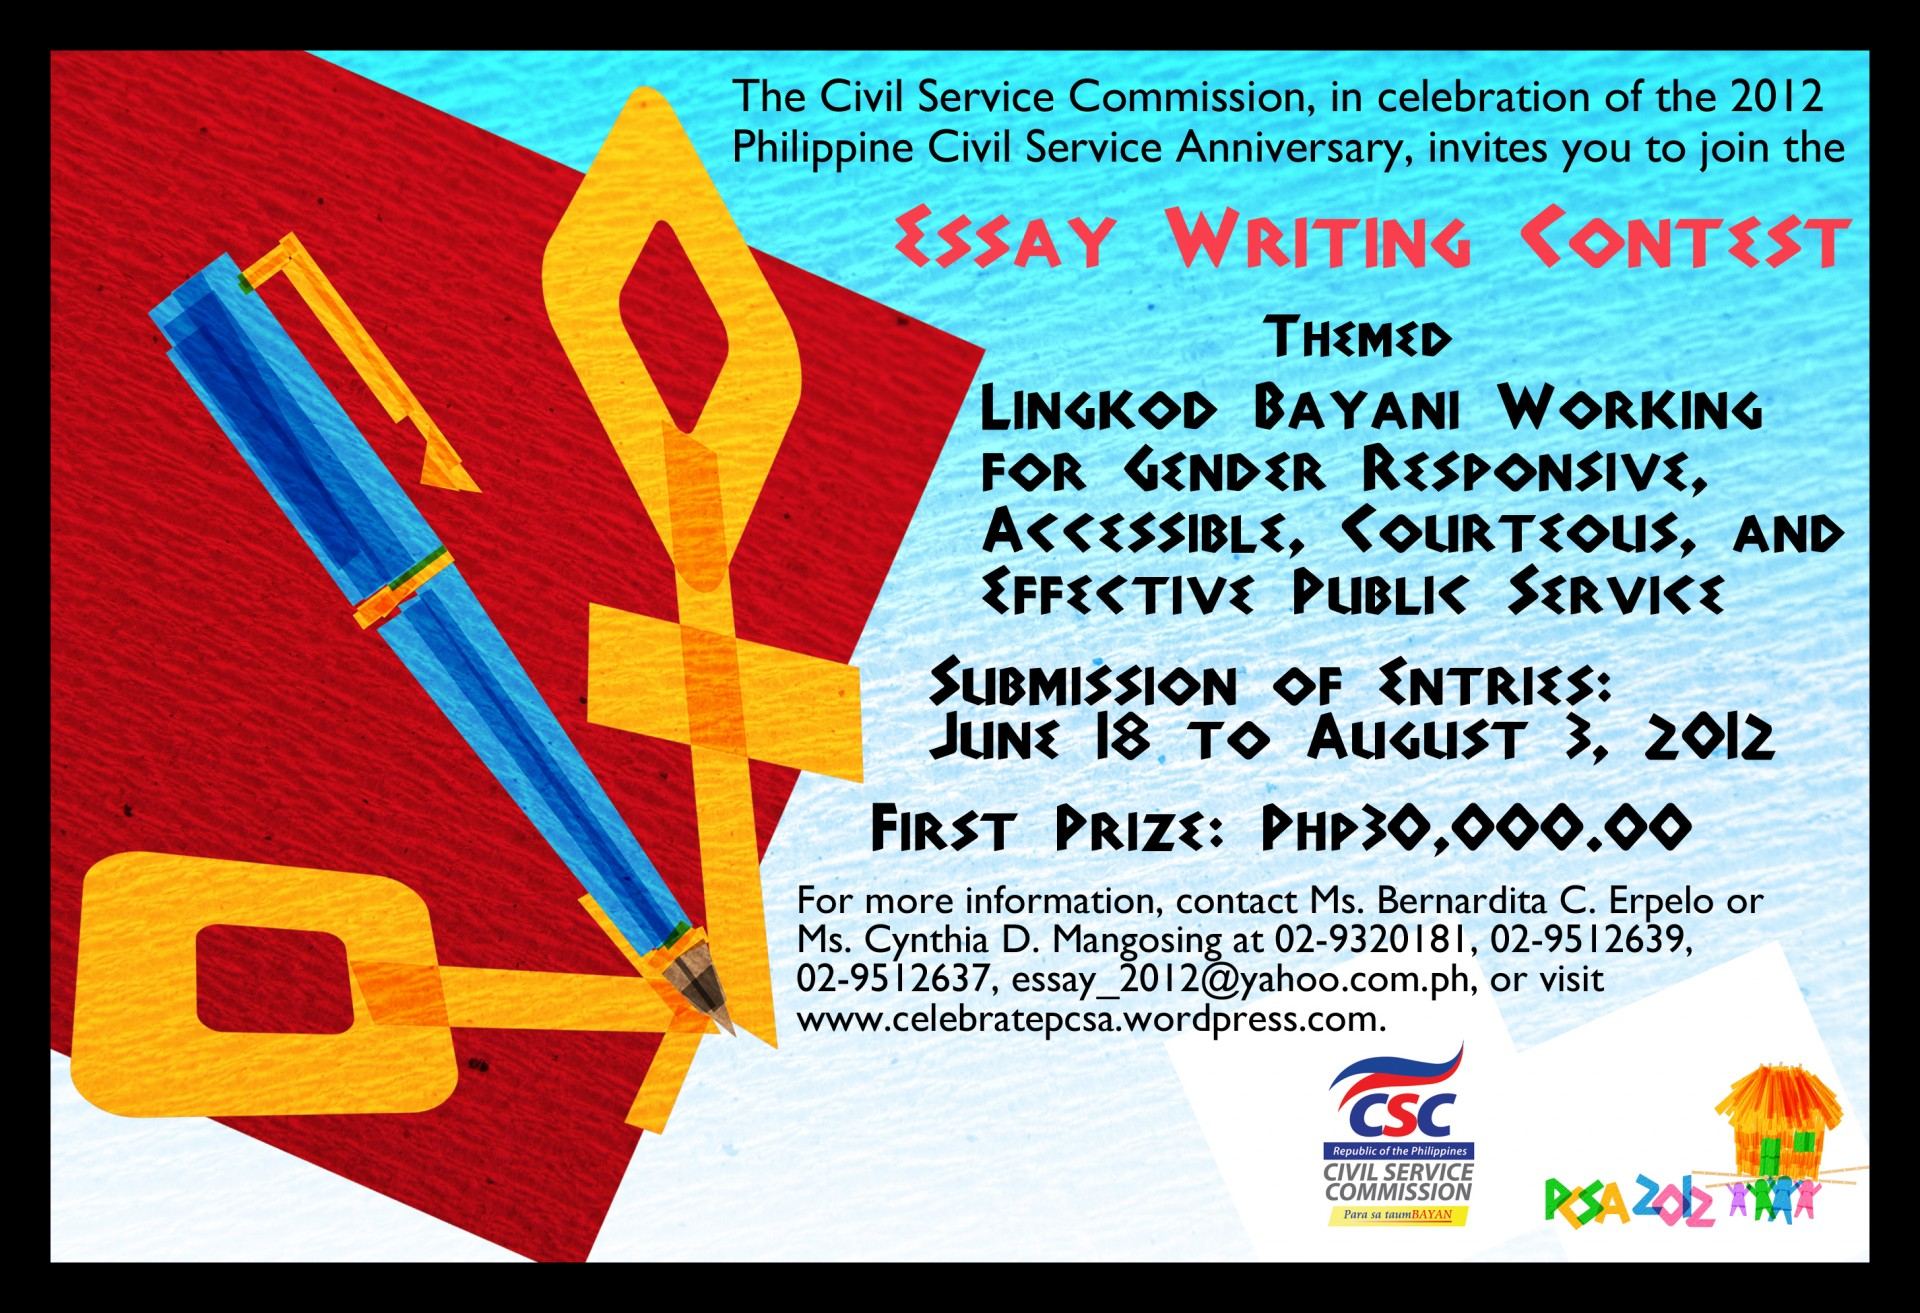 002 Essay Writing Contest 2012pcsa Flyer Kubo Essay3 Incredible International Competitions For High School Students Rules By Essayhub 1920